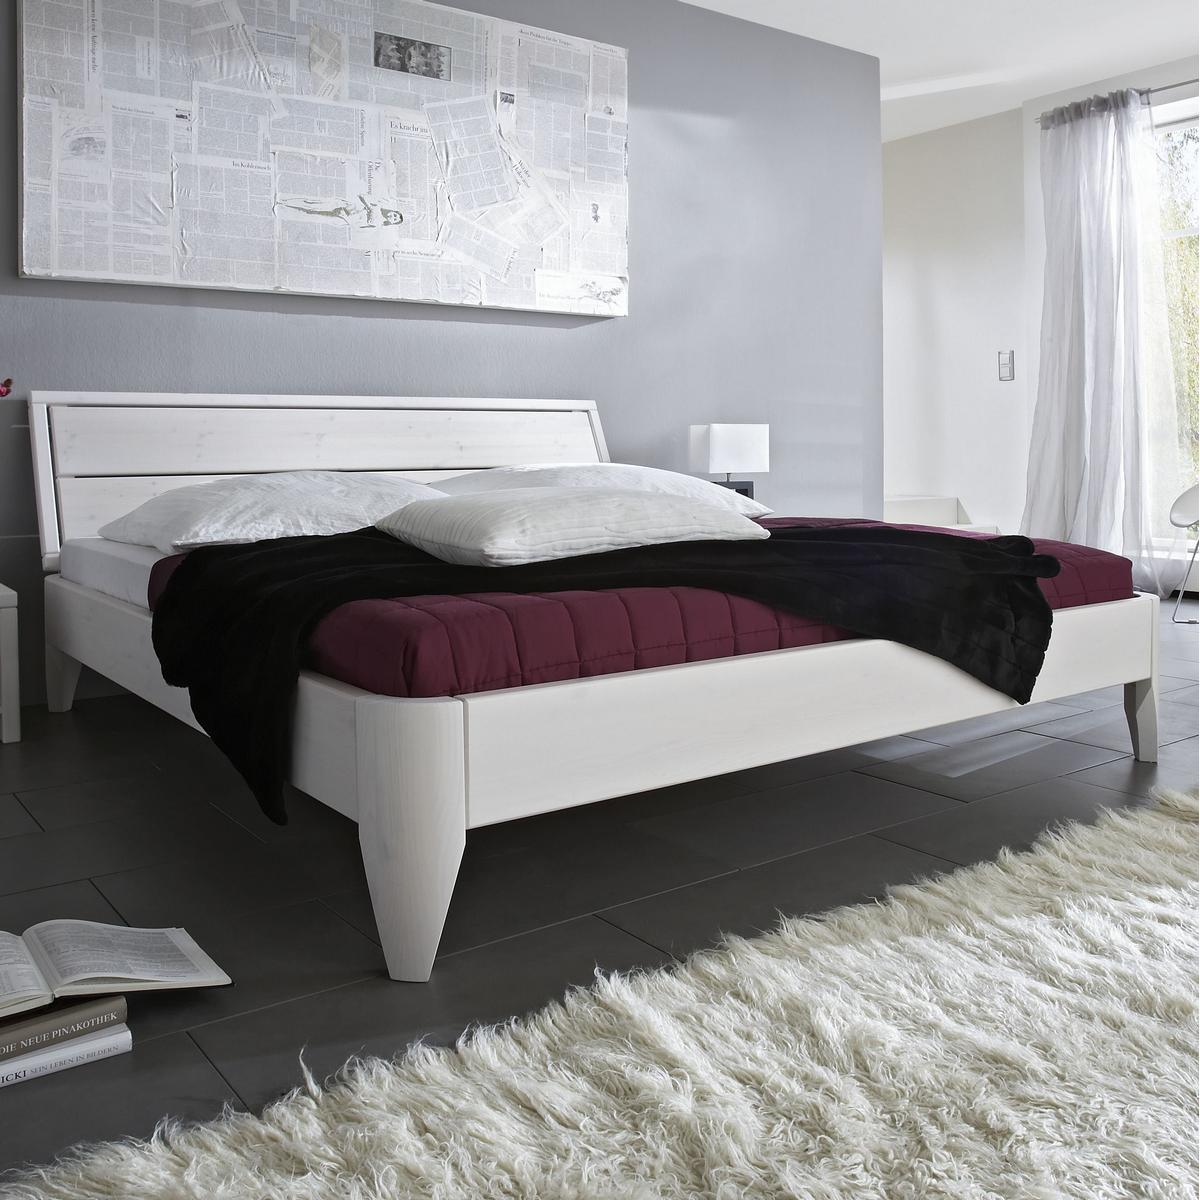 massivholz bett 120x200 easy sleep kiefer massiv wei lackiert 9412 72 0. Black Bedroom Furniture Sets. Home Design Ideas